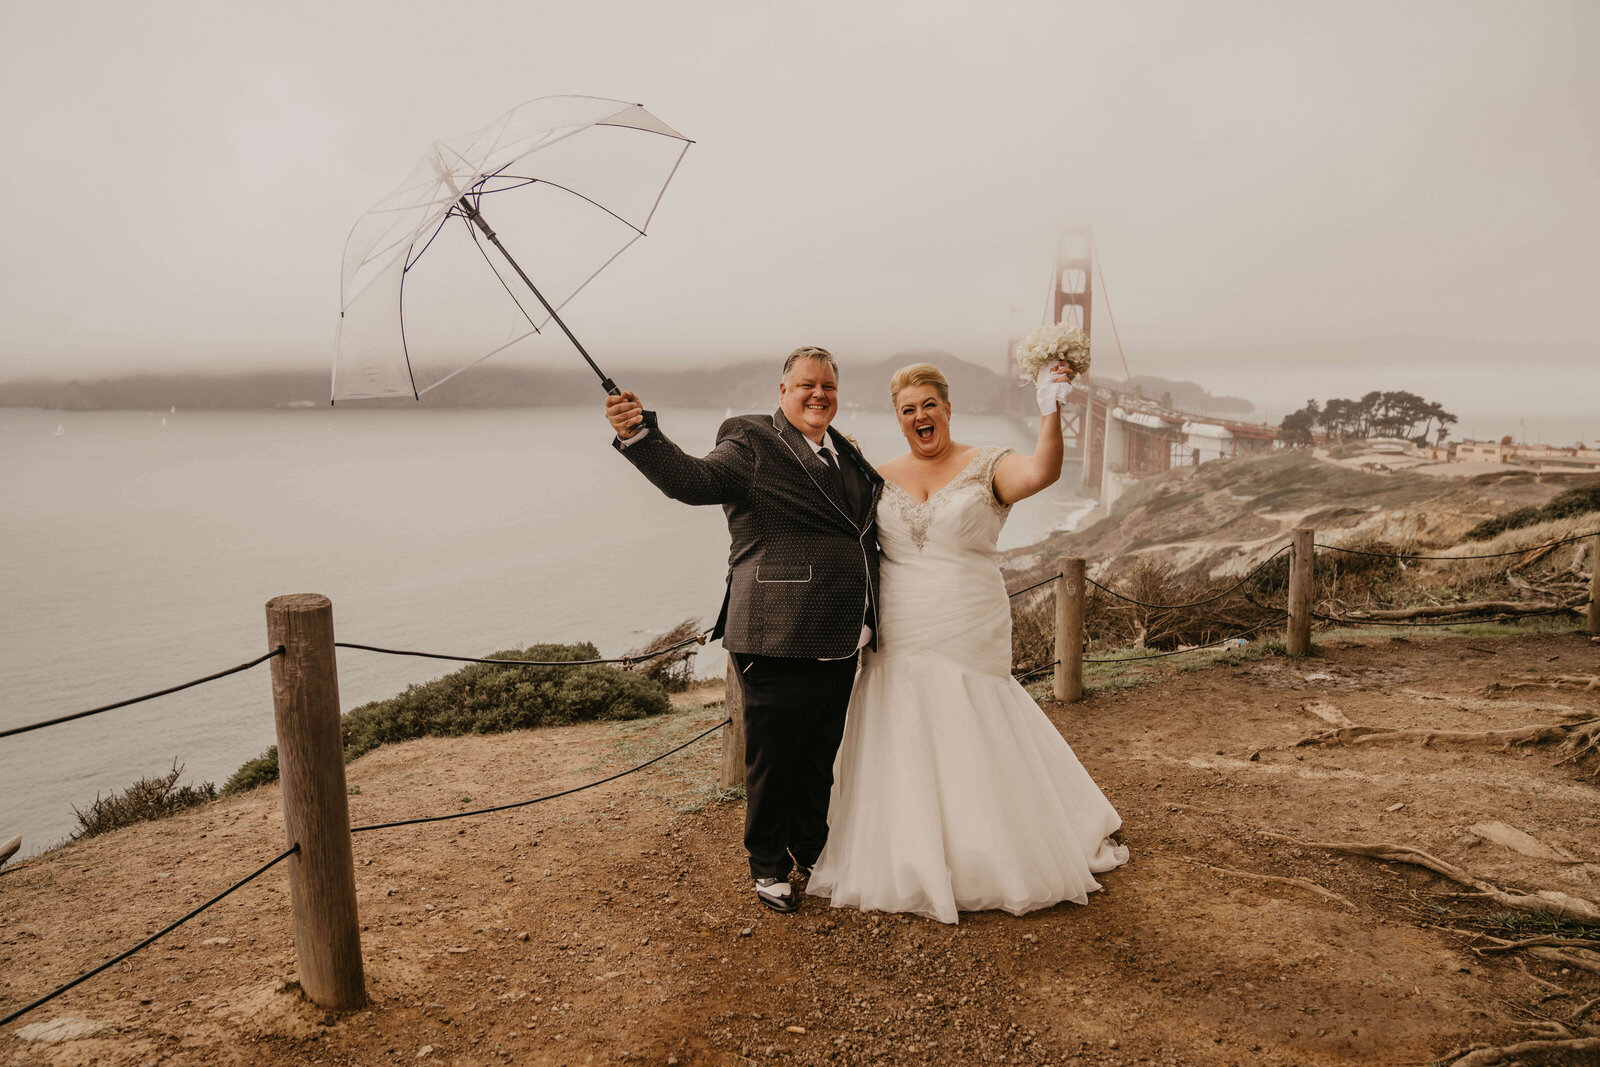 Bride and Groom celebrating just getting married at the Golden Gate Bridge